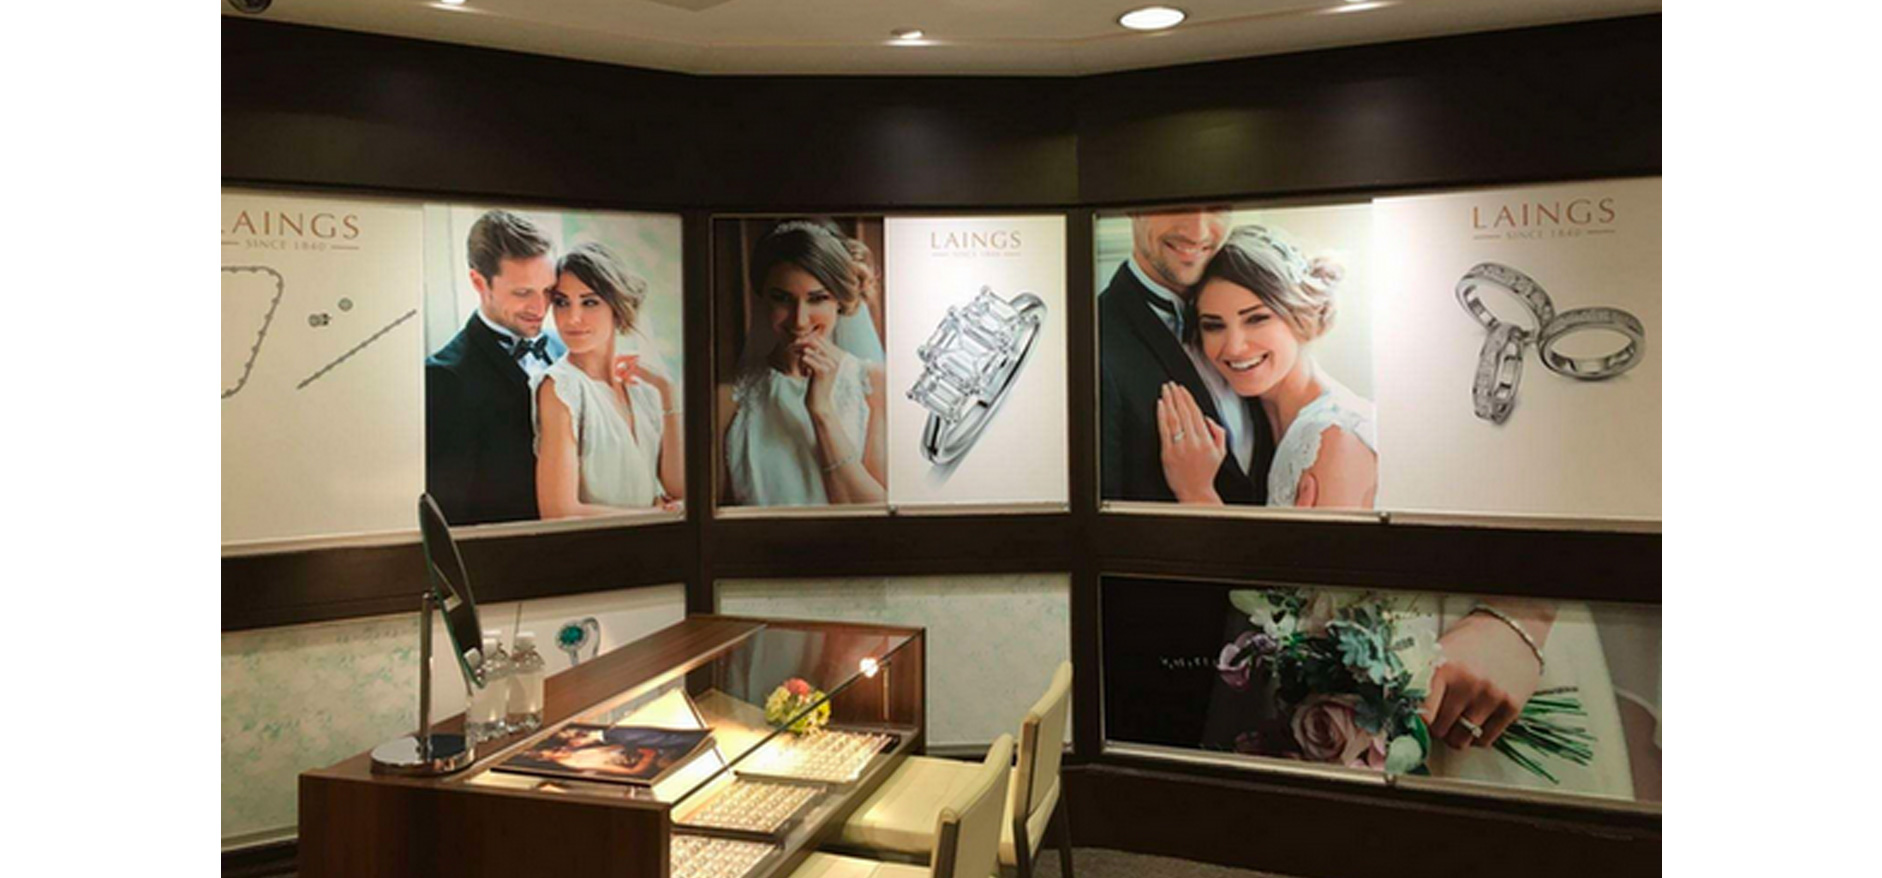 Engagement rings shop displays by VM& Events